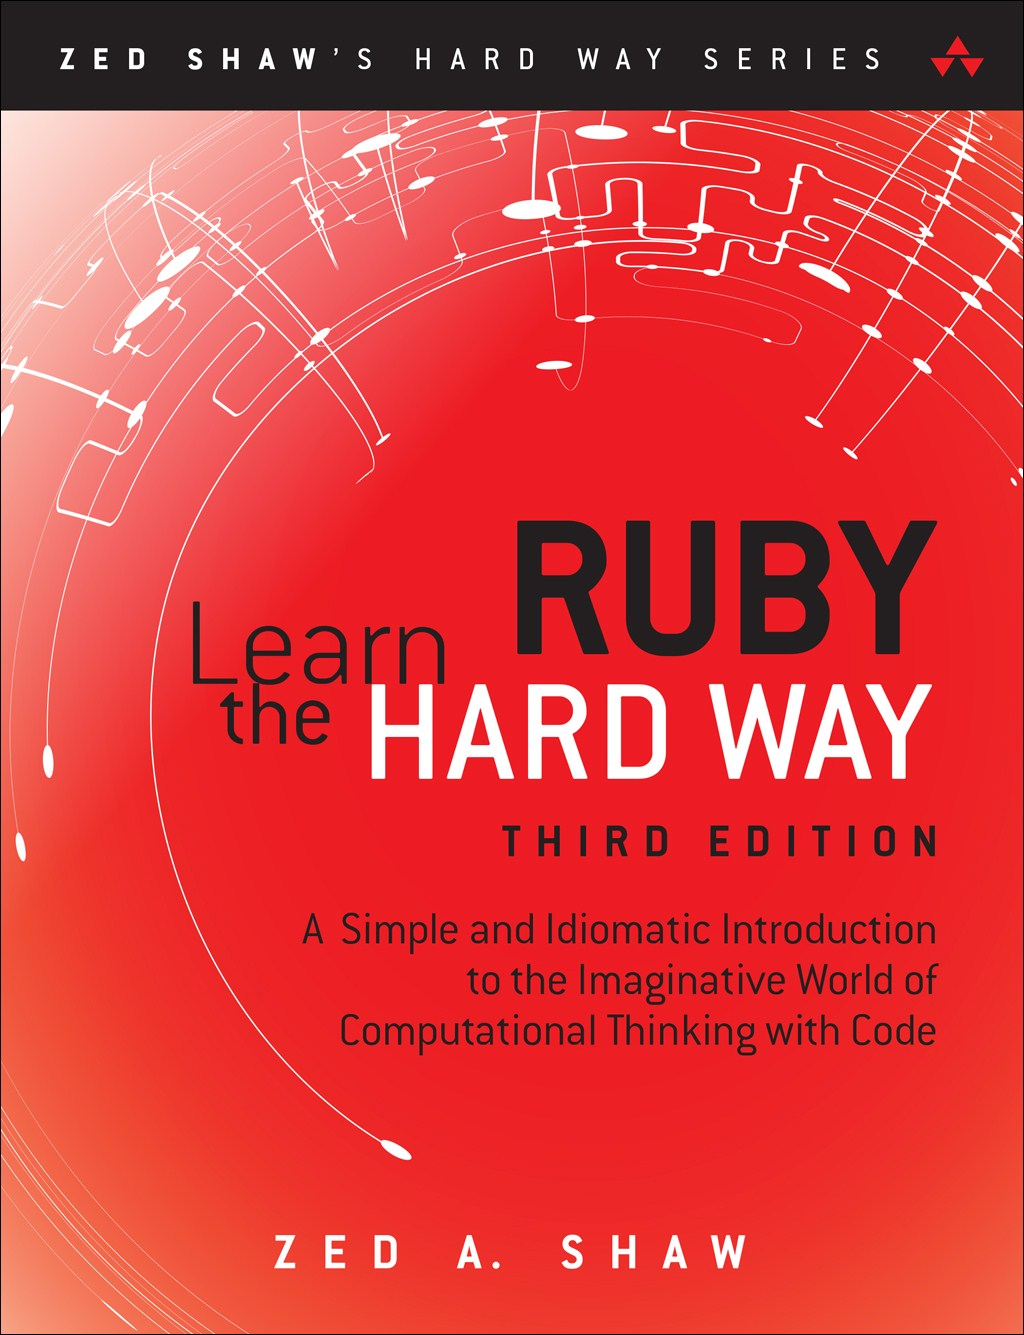 Learn Ruby the Hard Way: A Simple and Idiomatic Introduction to the Imaginative World Of Computational Thinking with Code, 3rd Edition